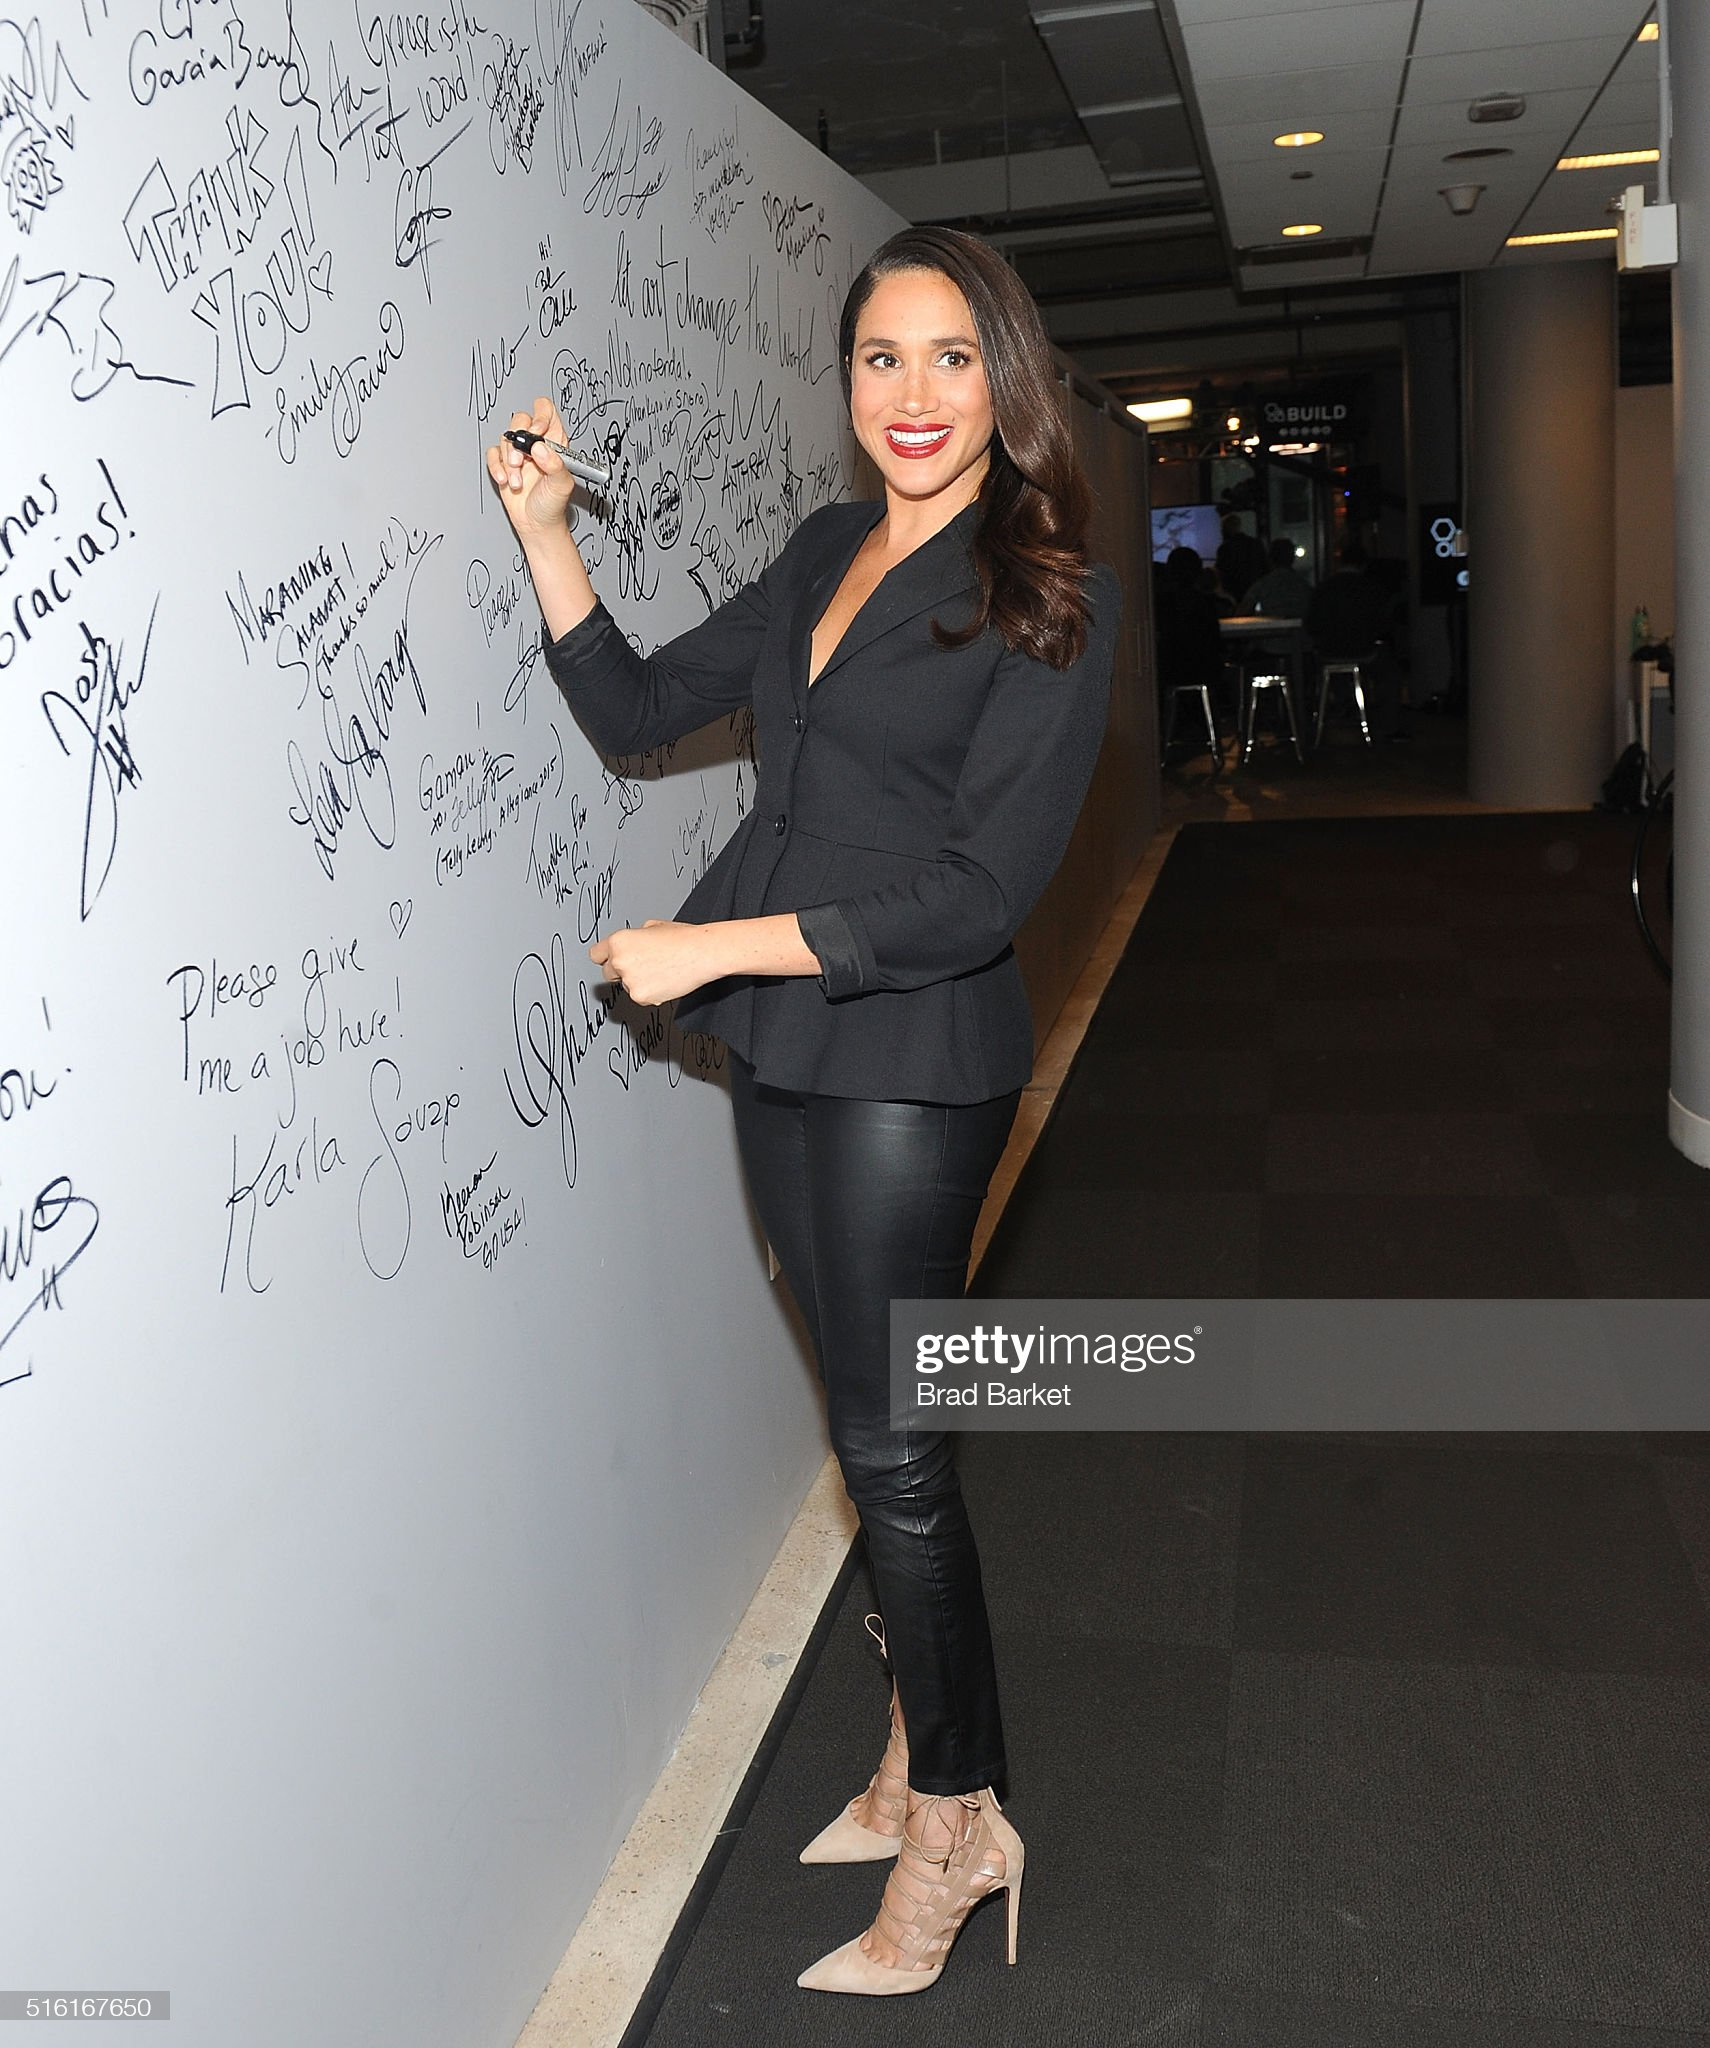 Meghan Markle - Página 2 Actress-meghan-markle-attends-aol-build-presents-suits-at-aol-studios-picture-id516167650?s=2048x2048